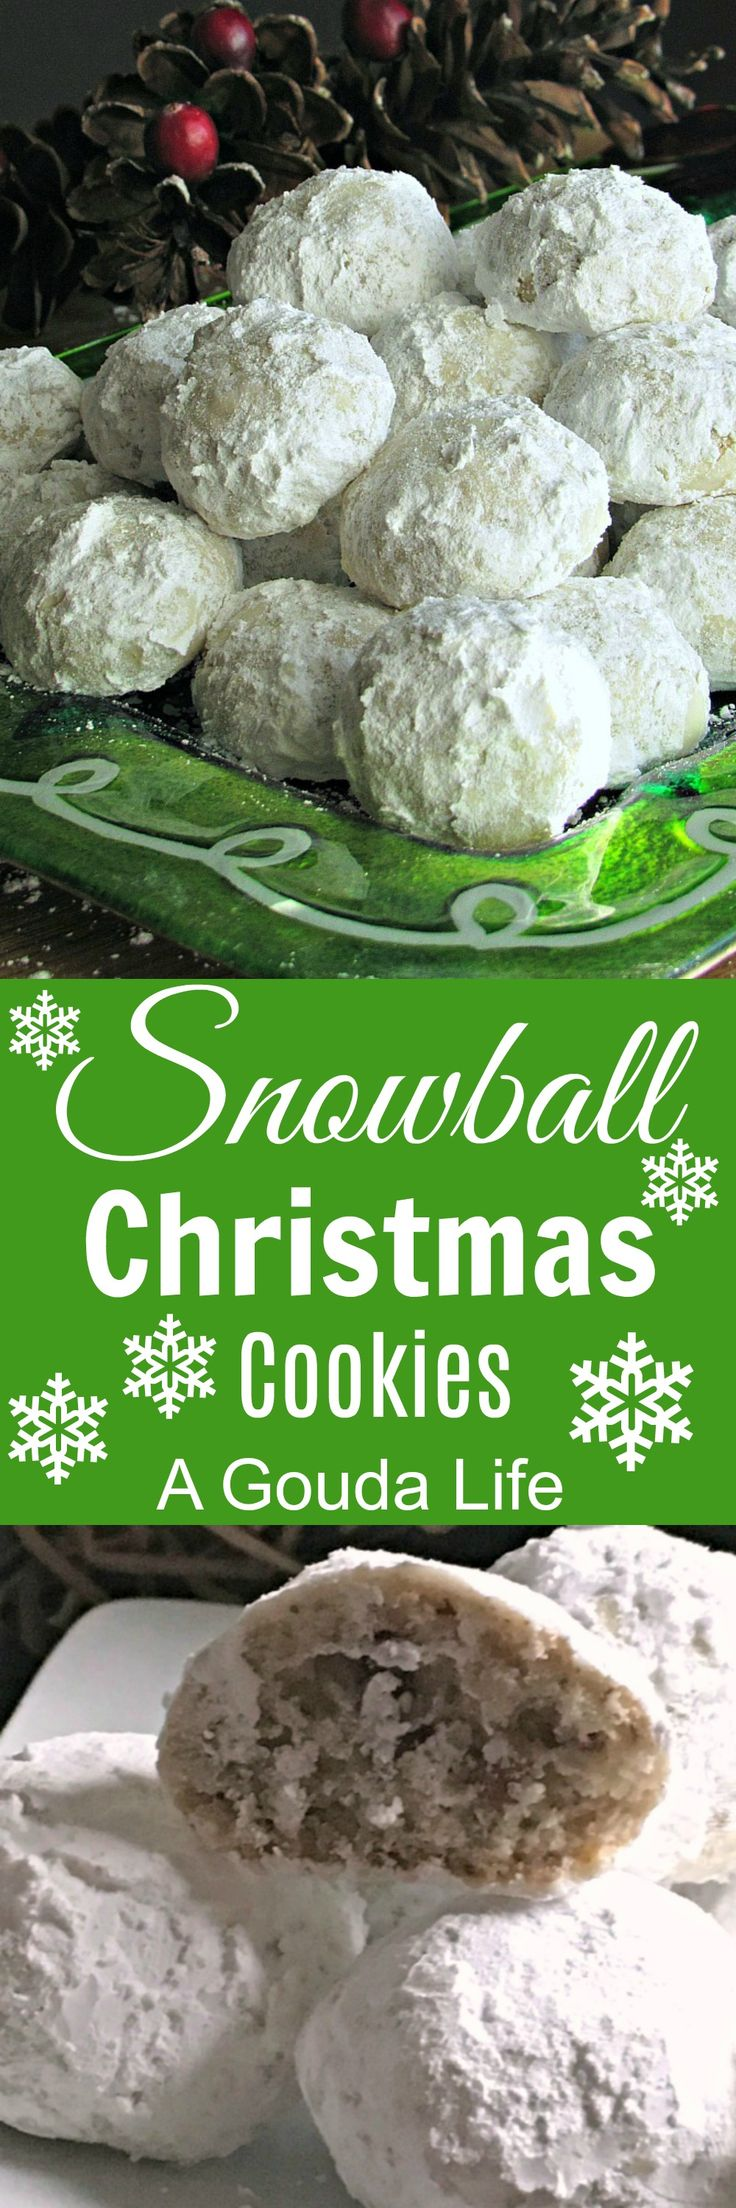 Snowball Christmas Cookies ~ nutty, buttery melt-in-your-mouth shortbread, dusted with confectioners sugar outside. Skill level: Easy